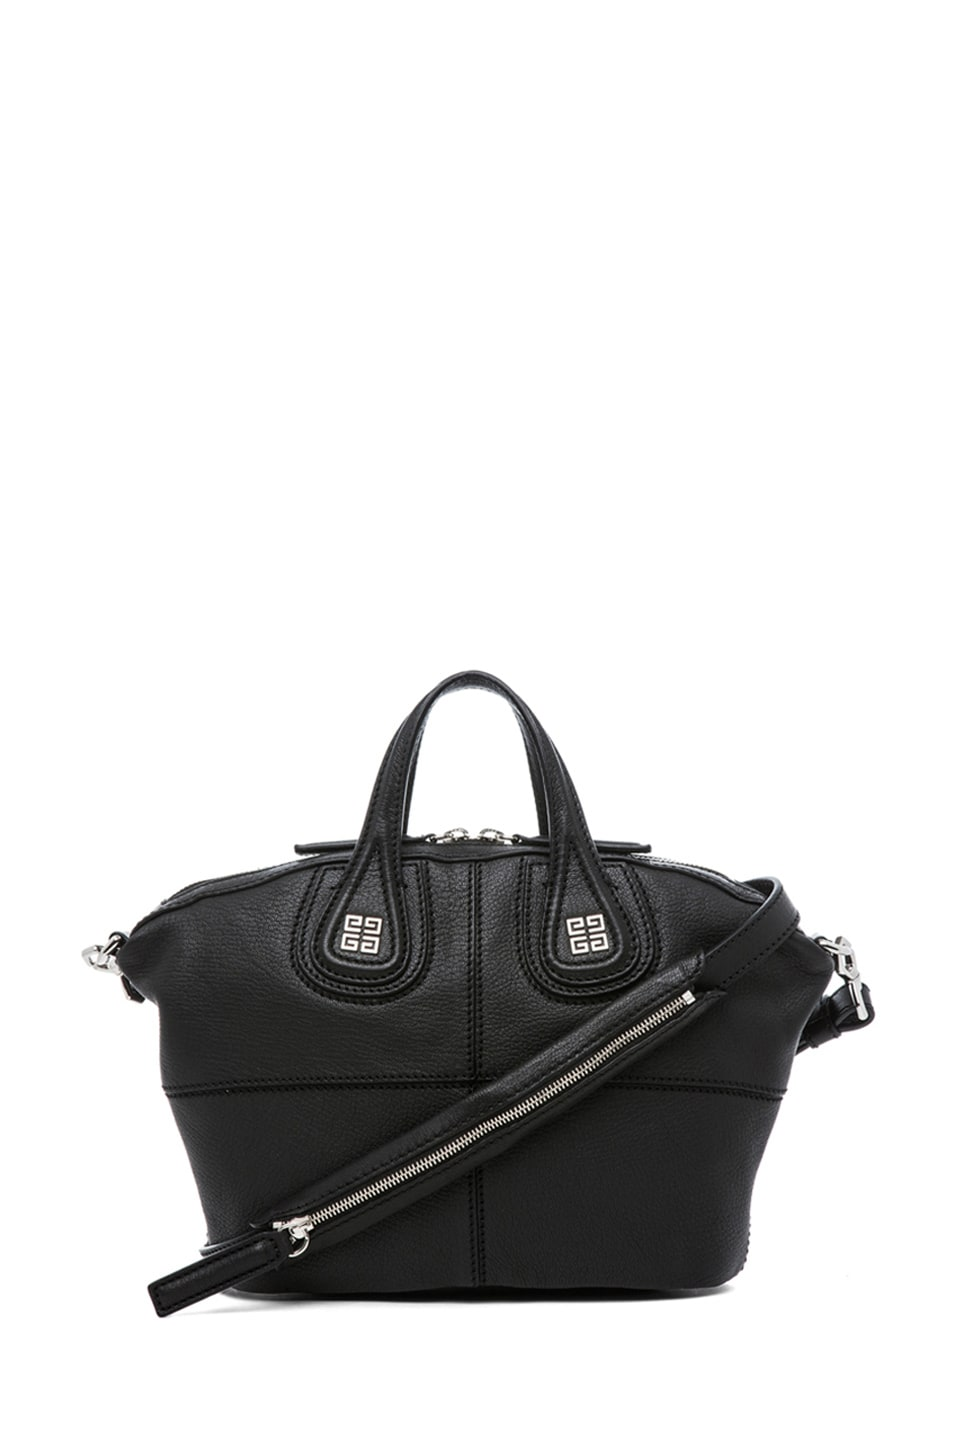 Image 1 of Givenchy Micro Nightingale in Black b314dcbe41e21